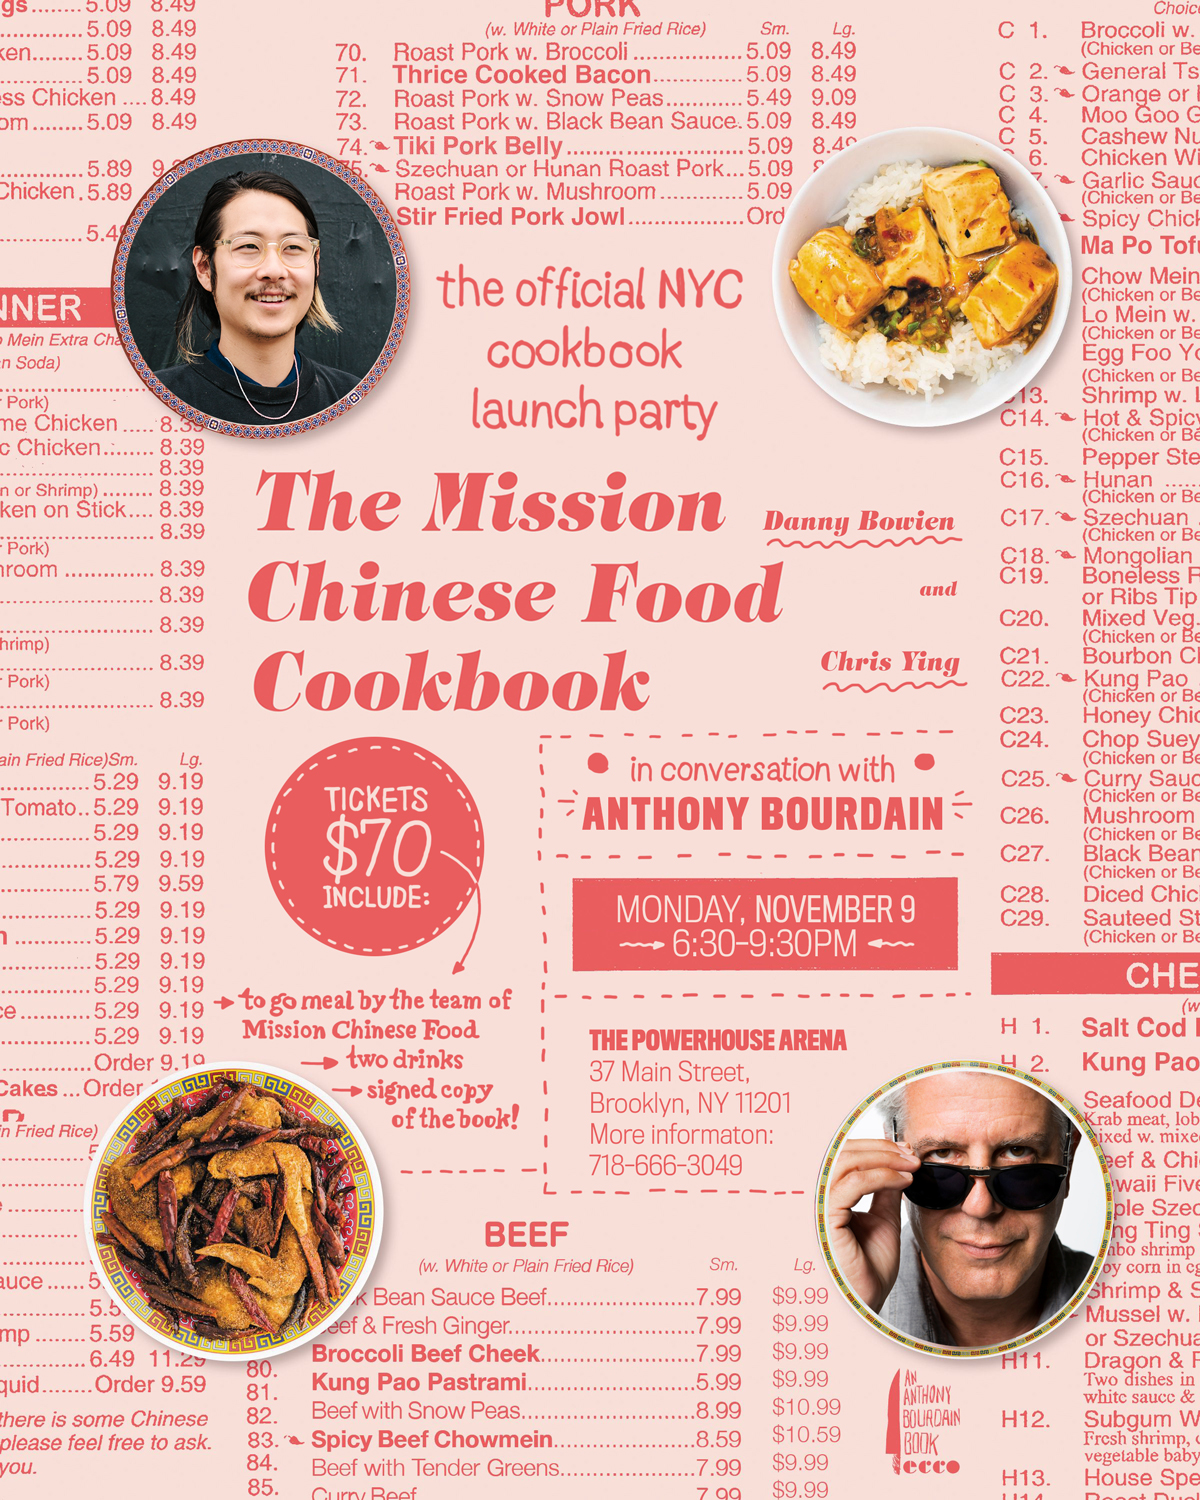 Book Launch: The Mission Chinese Food Cookbook by Danny Bowien and Chris Ying in conversation with Anthony Bourdain